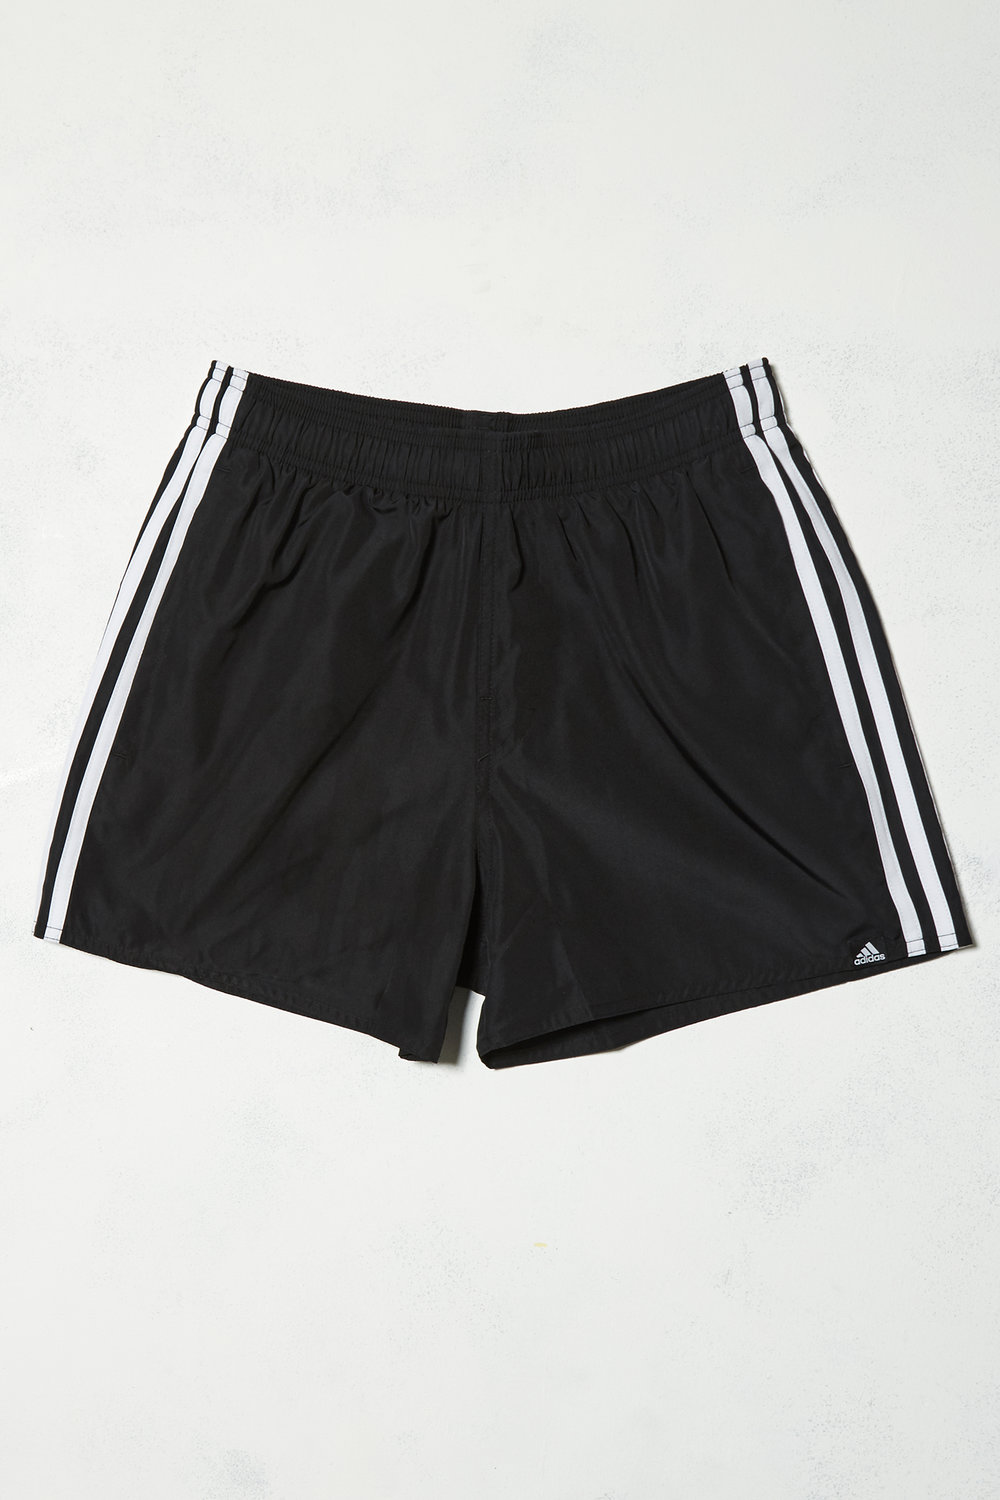 adidas three stripe swim shorts - £25